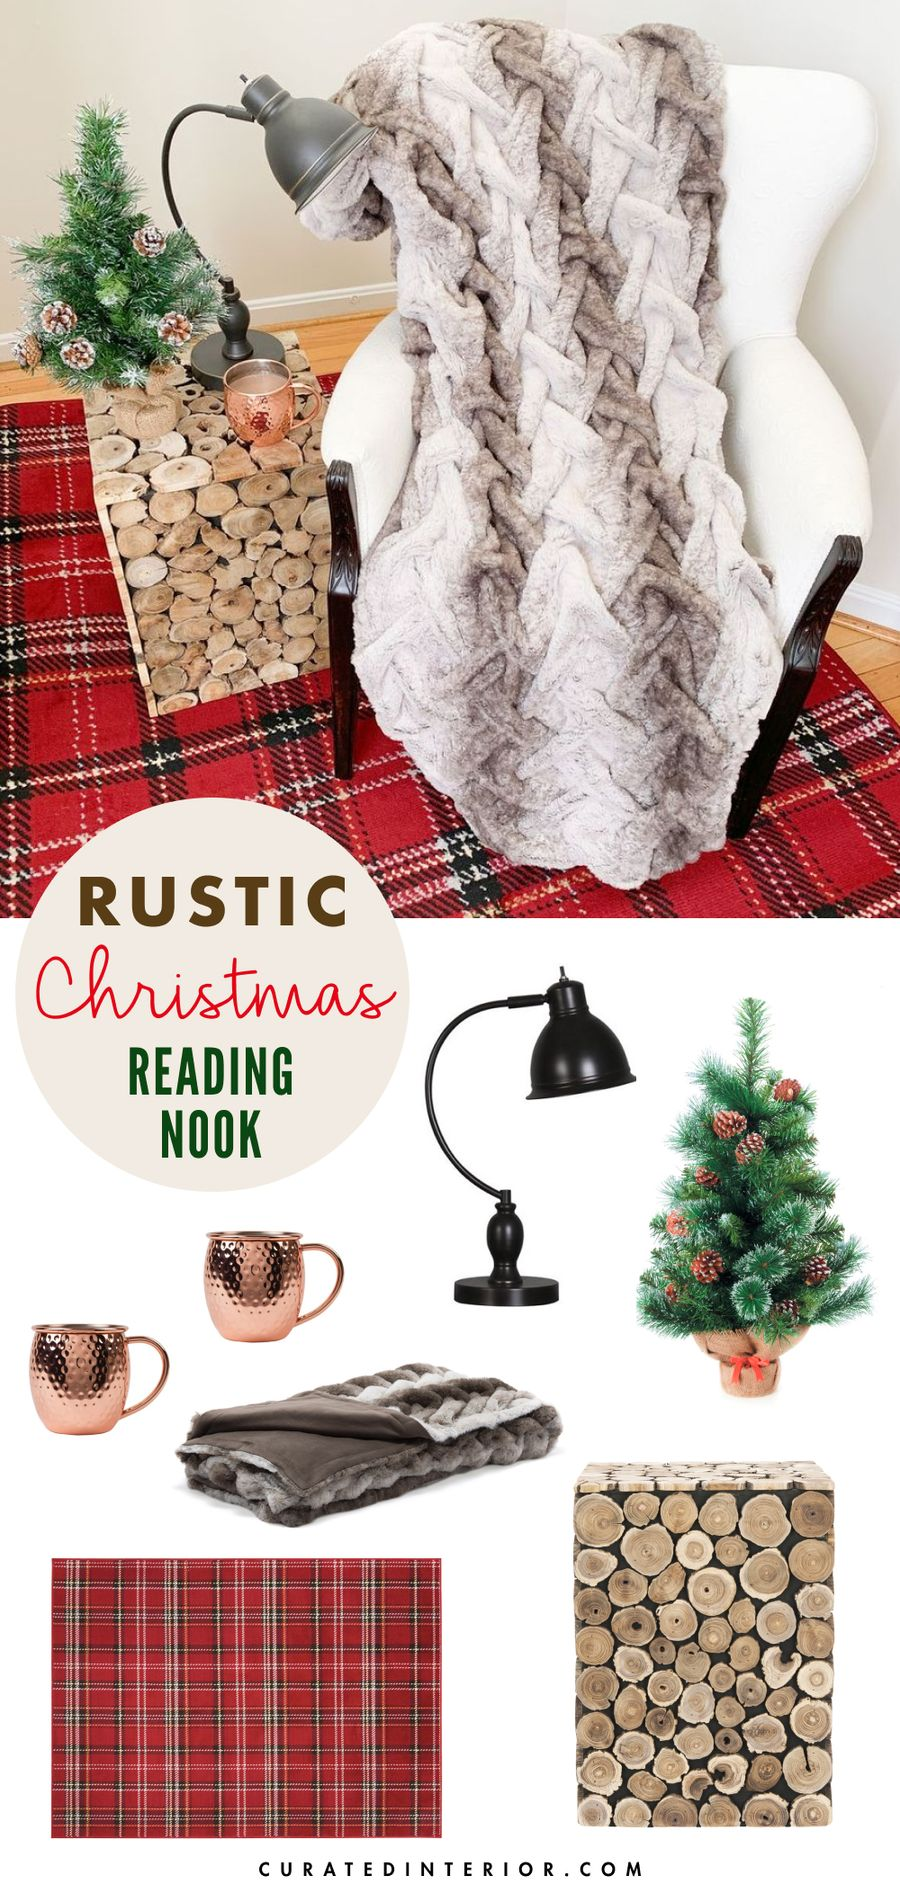 How to Create a Rustic Christmas Reading Nook